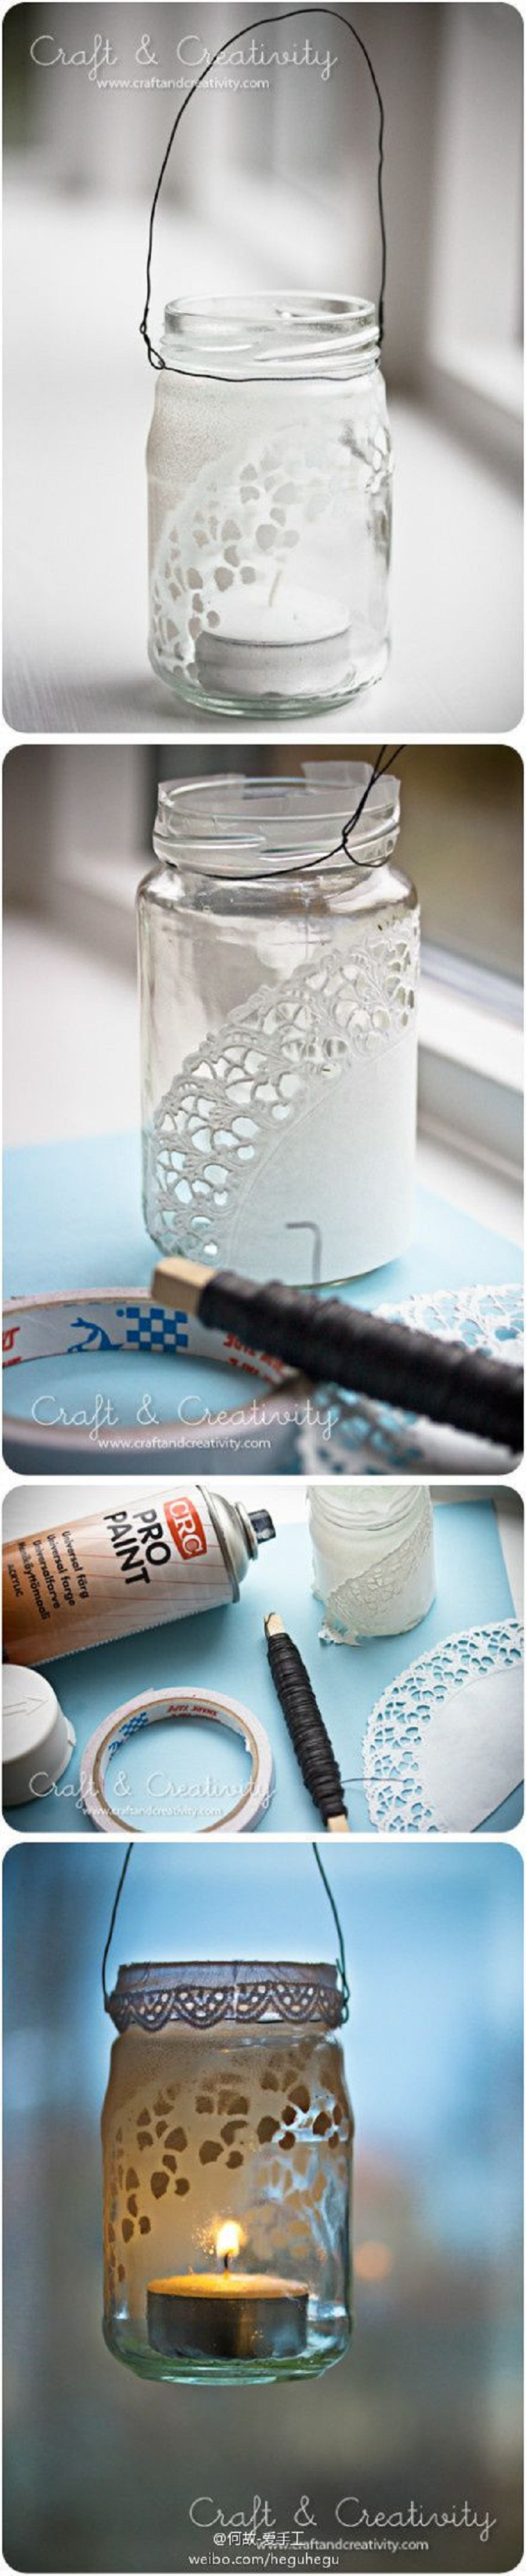 crafts-with-jars_04